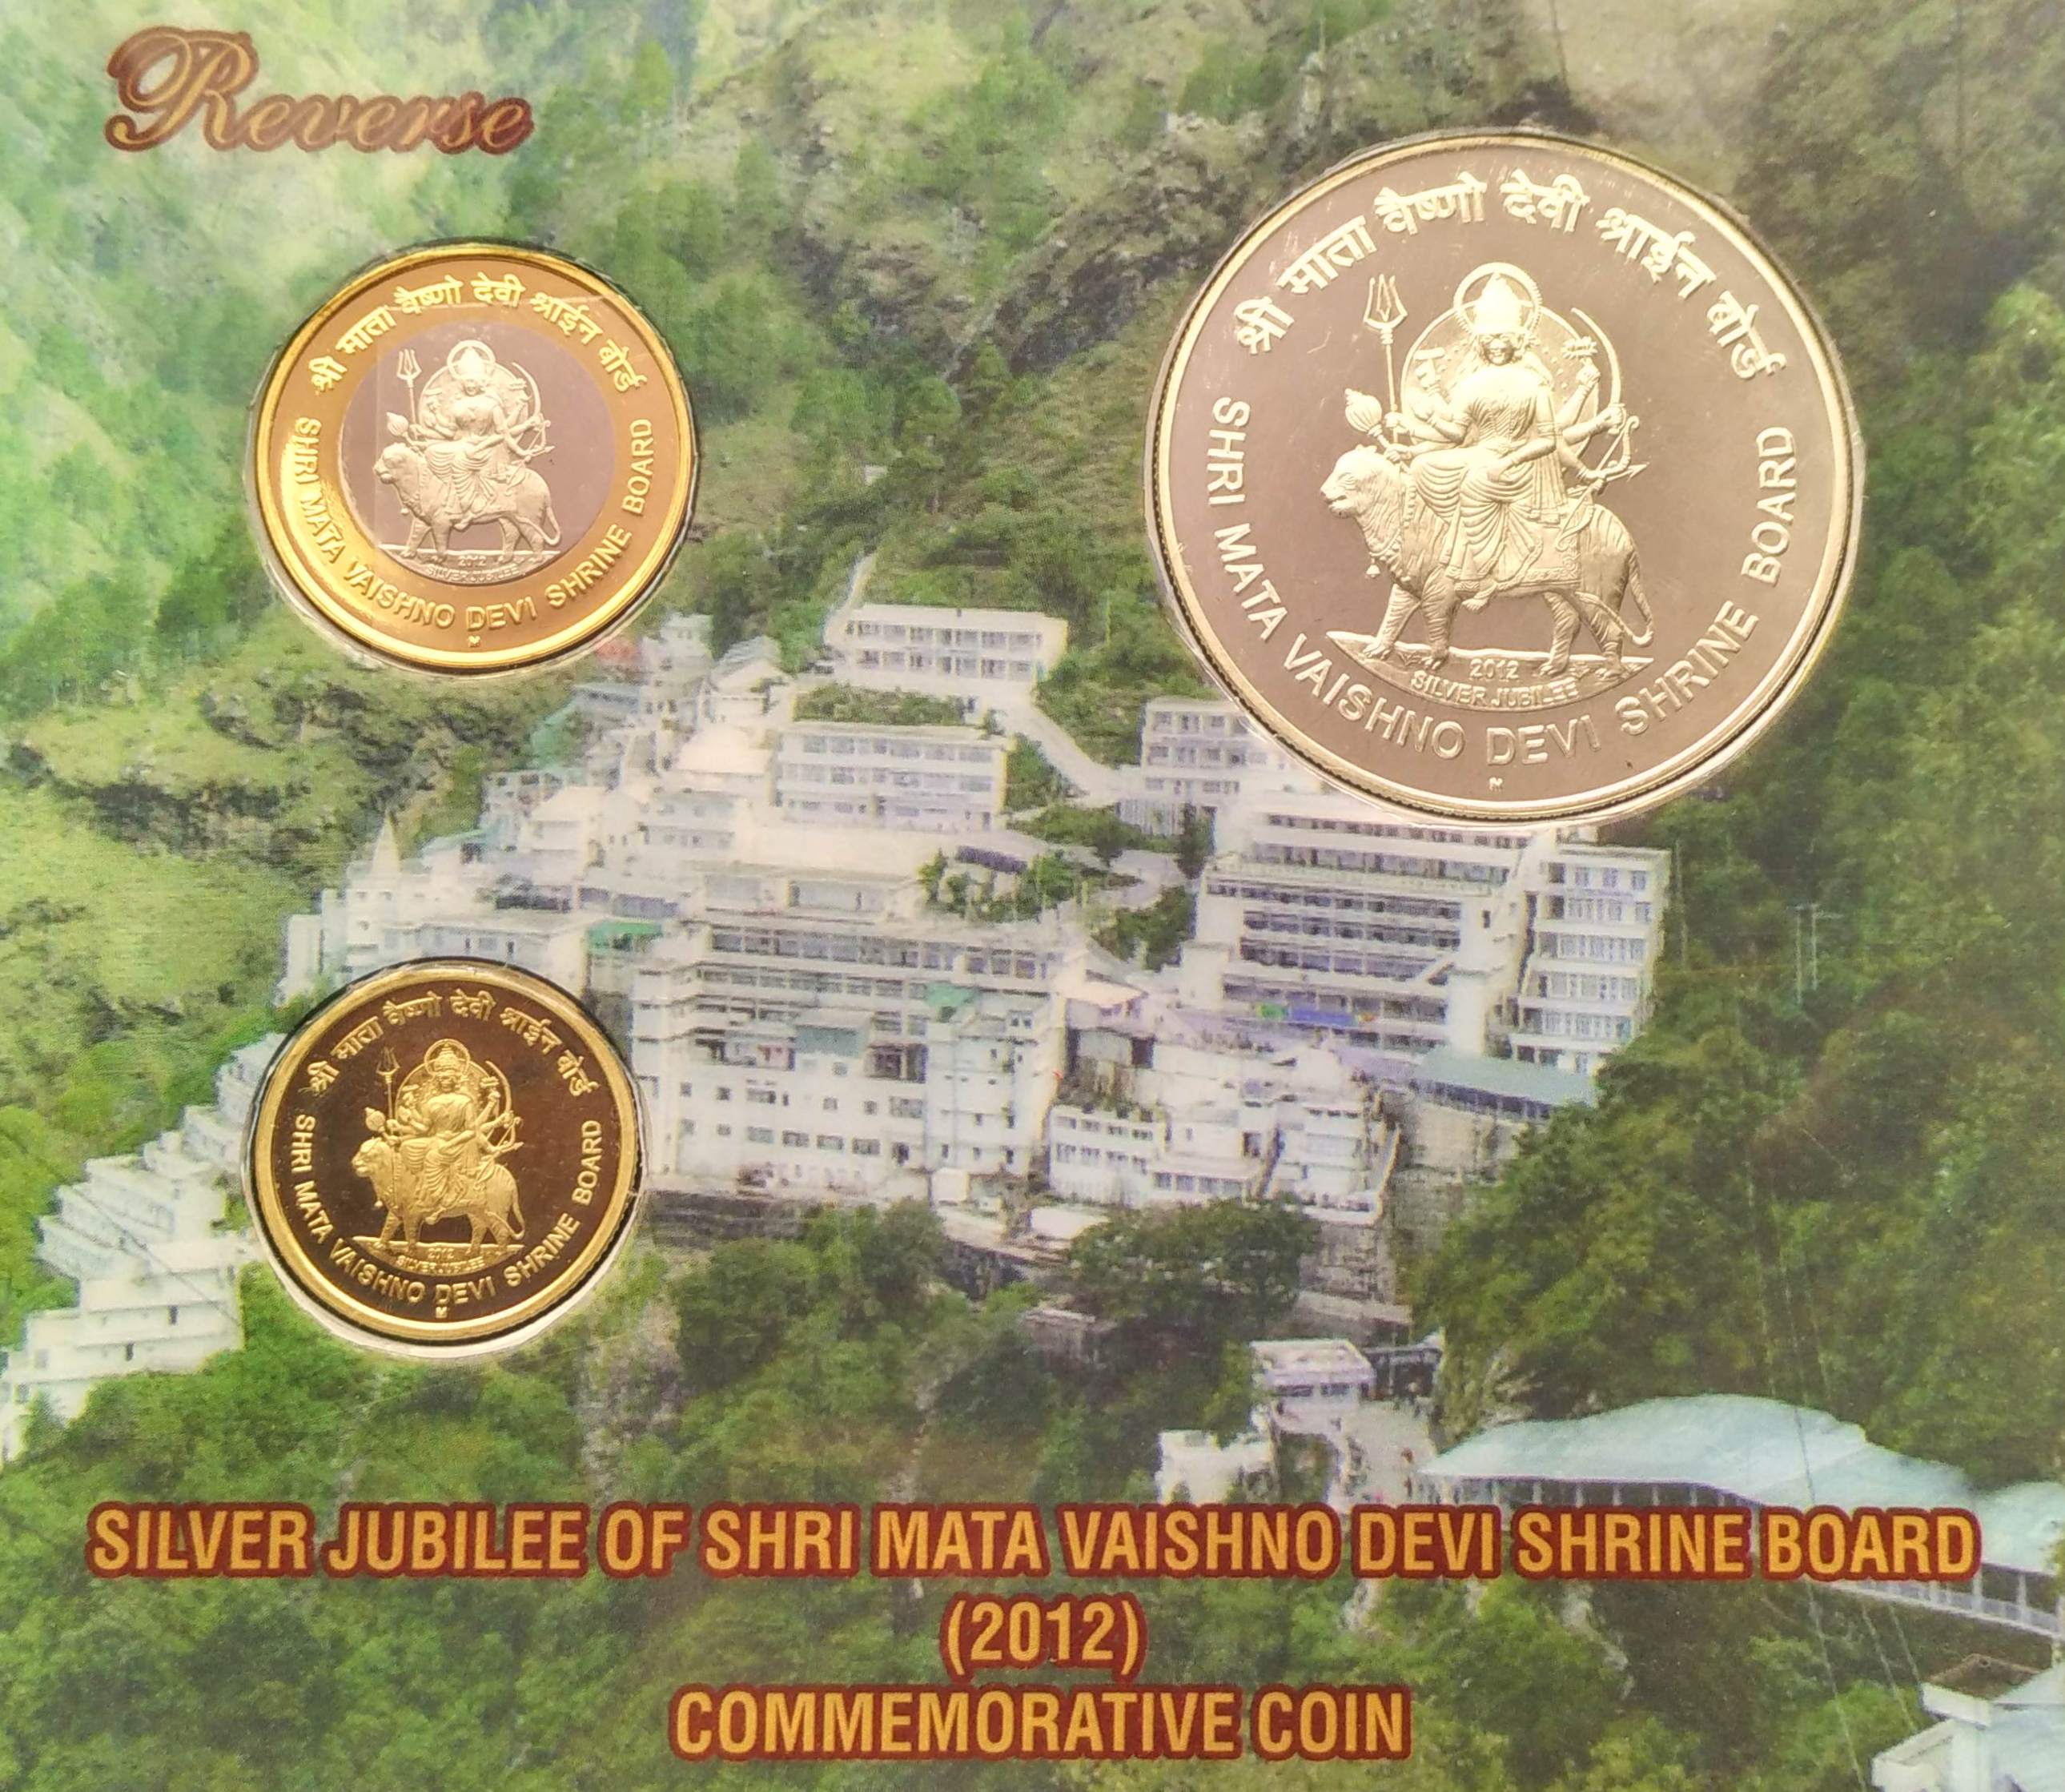 Silver Jubilee of Shri Mata Vaishno Devi Shrine Board